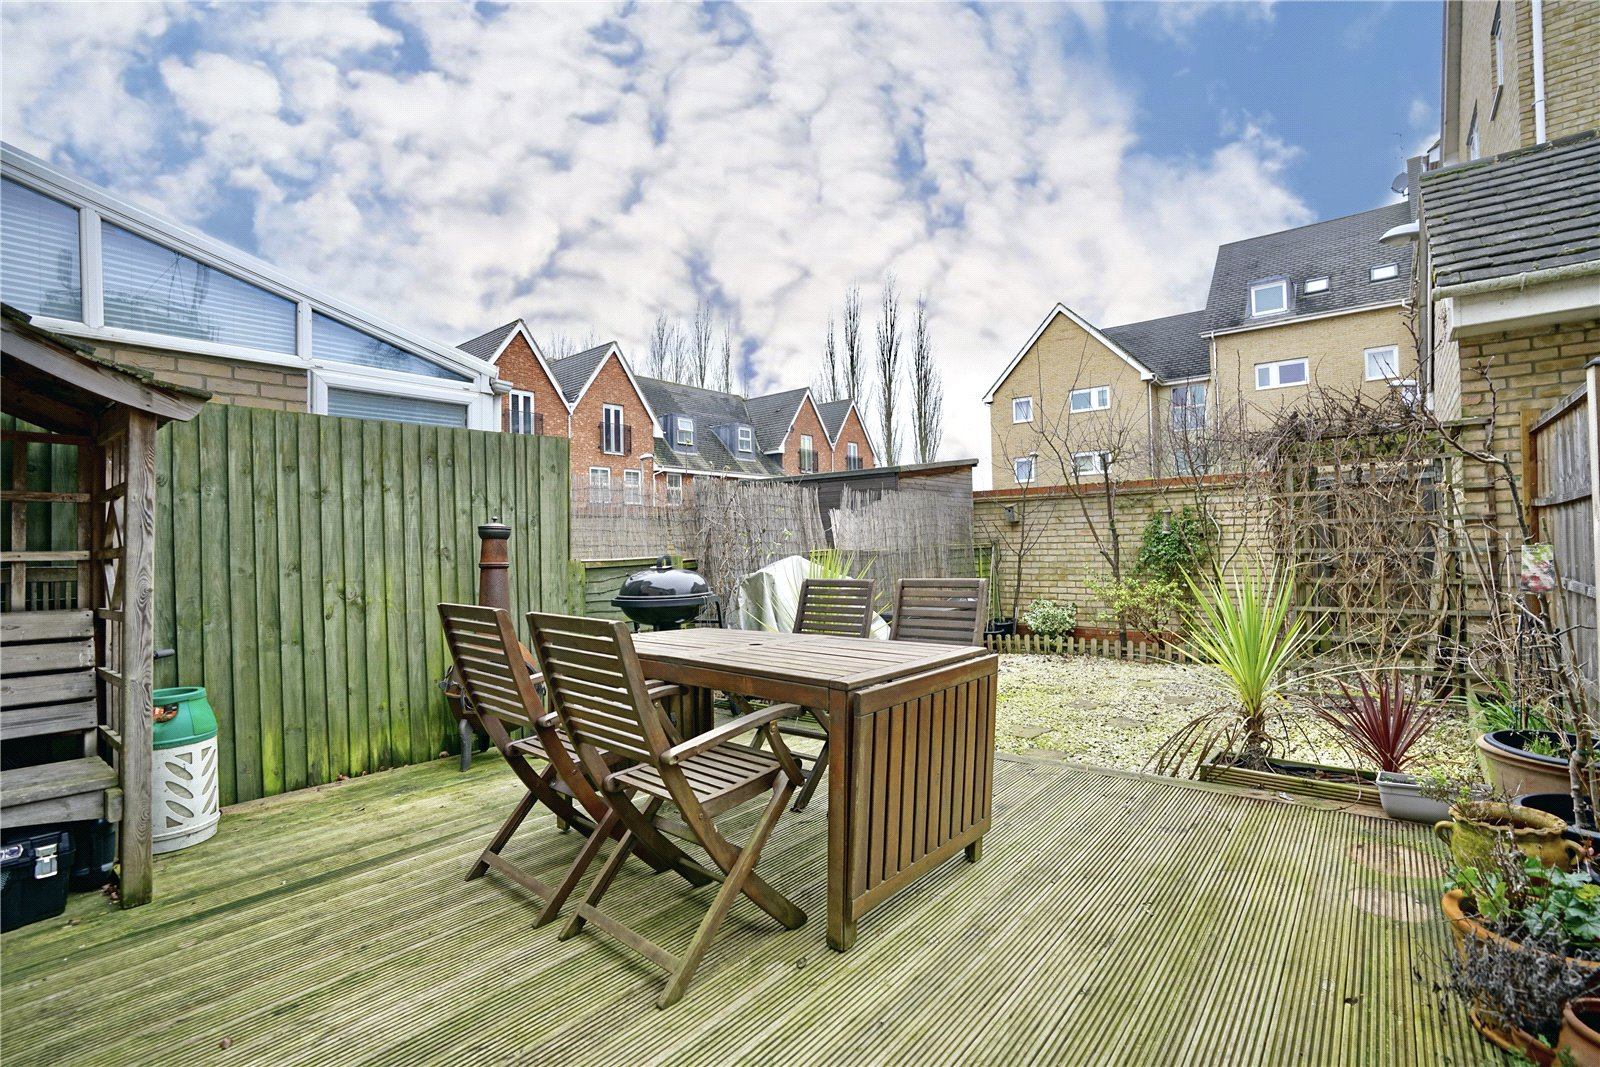 3 bed house for sale in Linton Close, Eaton Socon  - Property Image 9